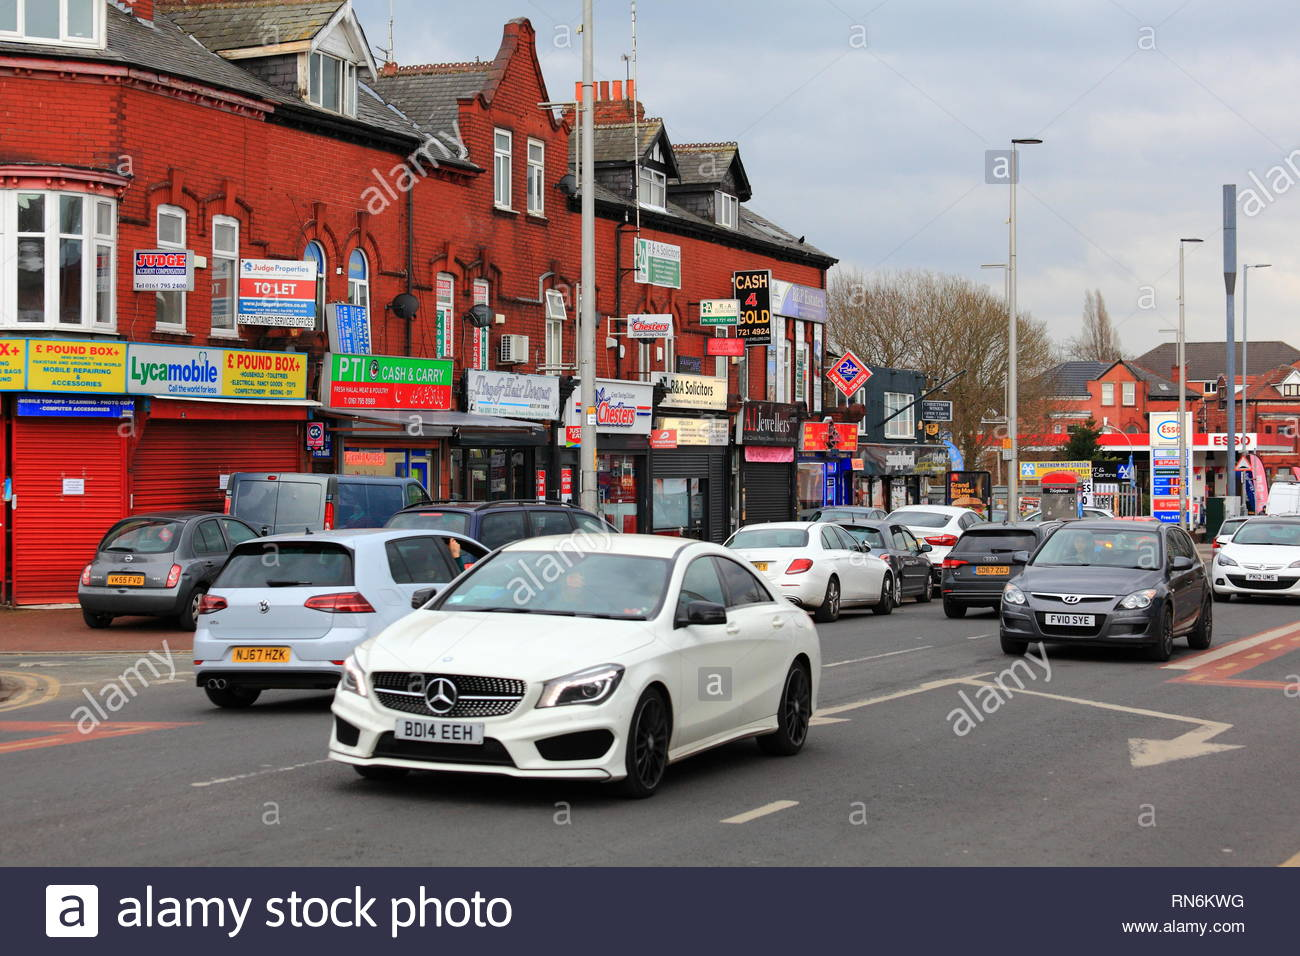 Cars in motion along Cheetham Hill Road Manchester UK with shops in background. - Stock Image